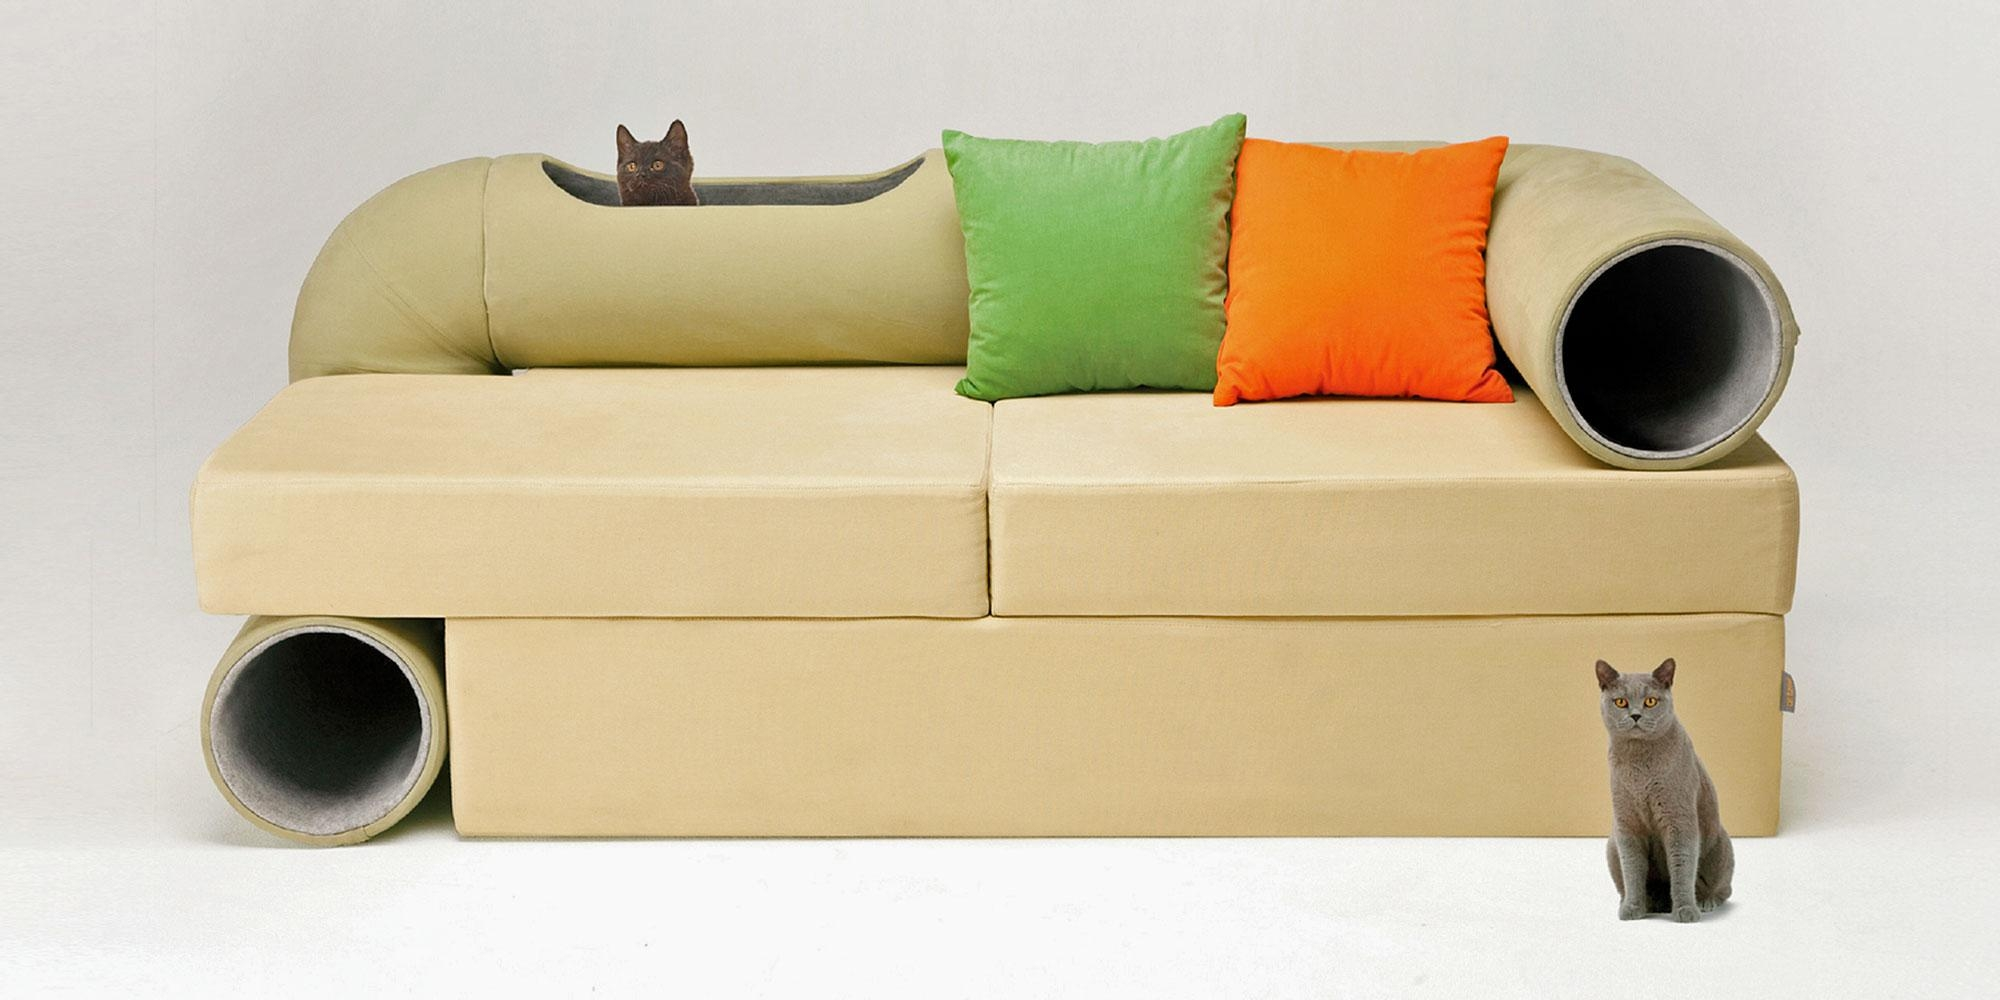 Cat Tunnel Sofa Throughout Cat Tunnel Couches (Image 11 of 20)